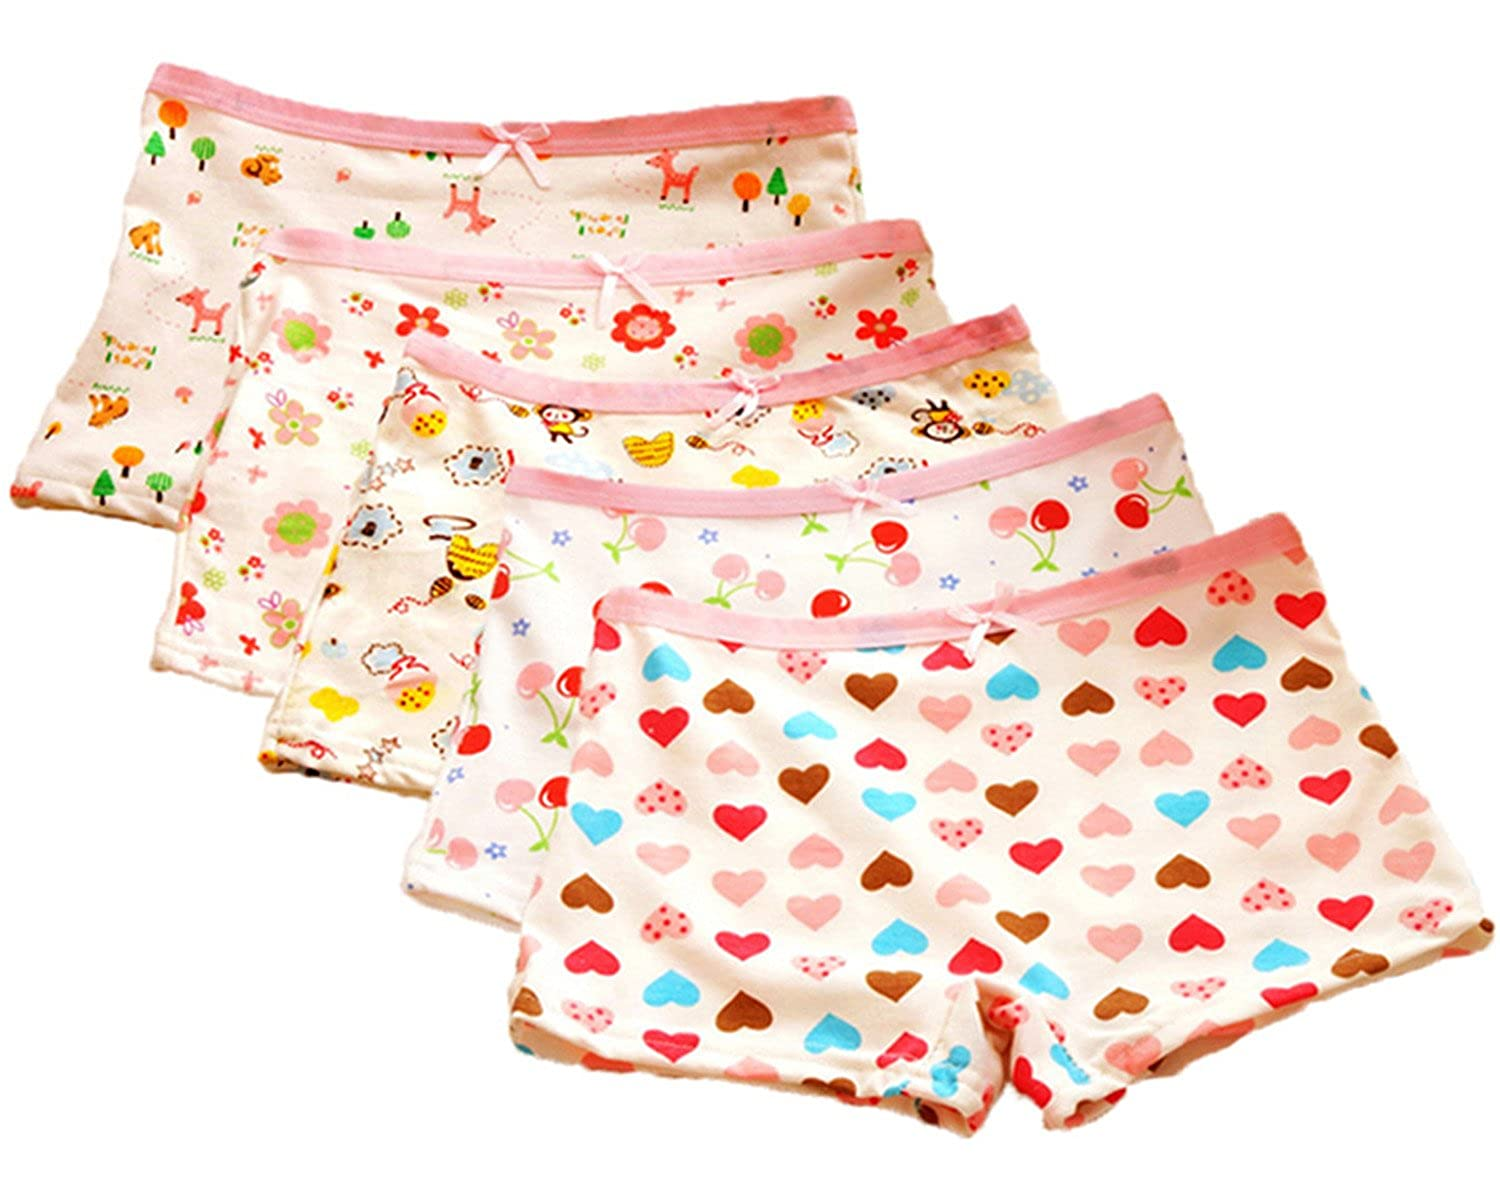 Little Girls Kids Baby Toddler 4Pcs Cartoon Bear Flower Boyshort Underwear Boxers Briefs Panties